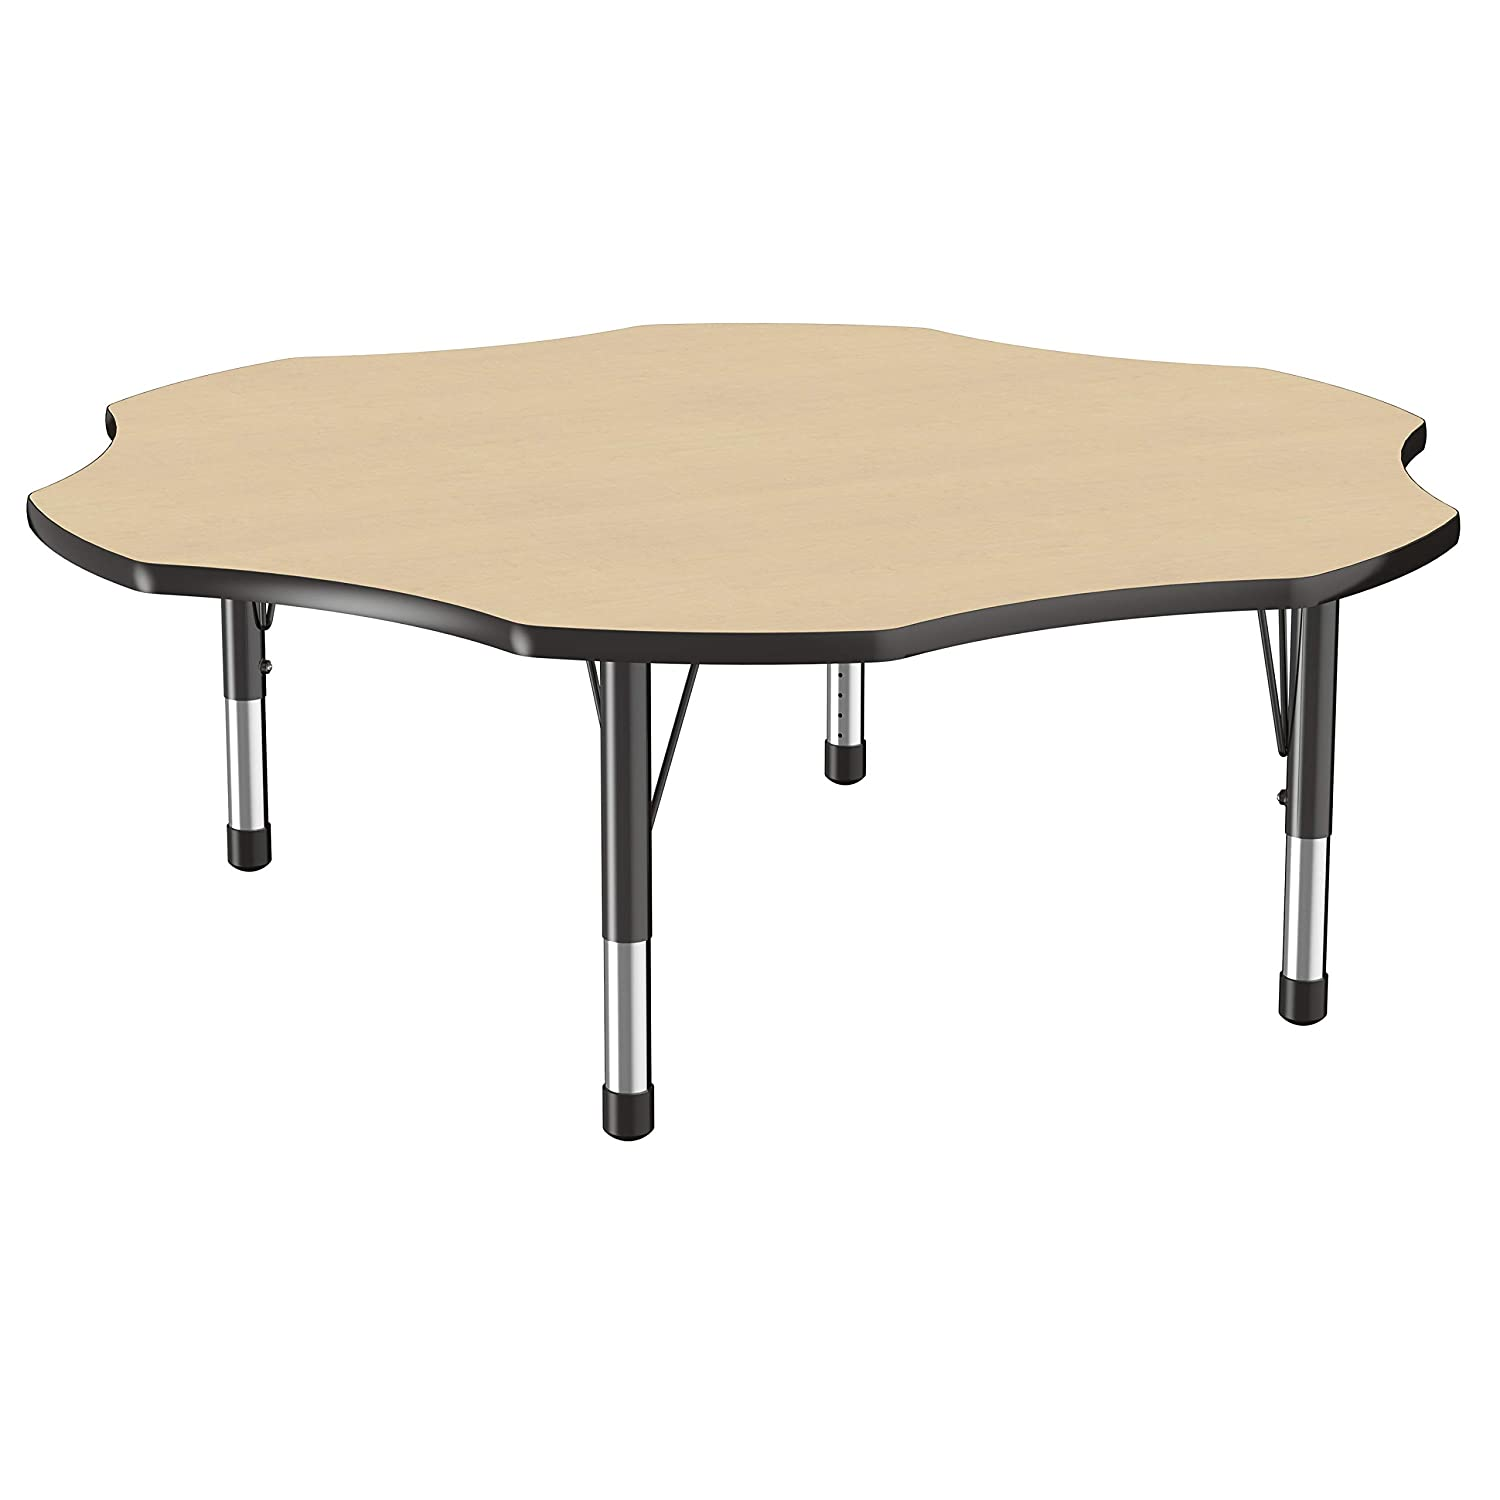 FDP Flower Activity School and Classroom Kids Table (60 inch), Toddler Legs for Collaborative Seating Environments, Adjustable Height 15-24 inches - Maple Top and Black Edge